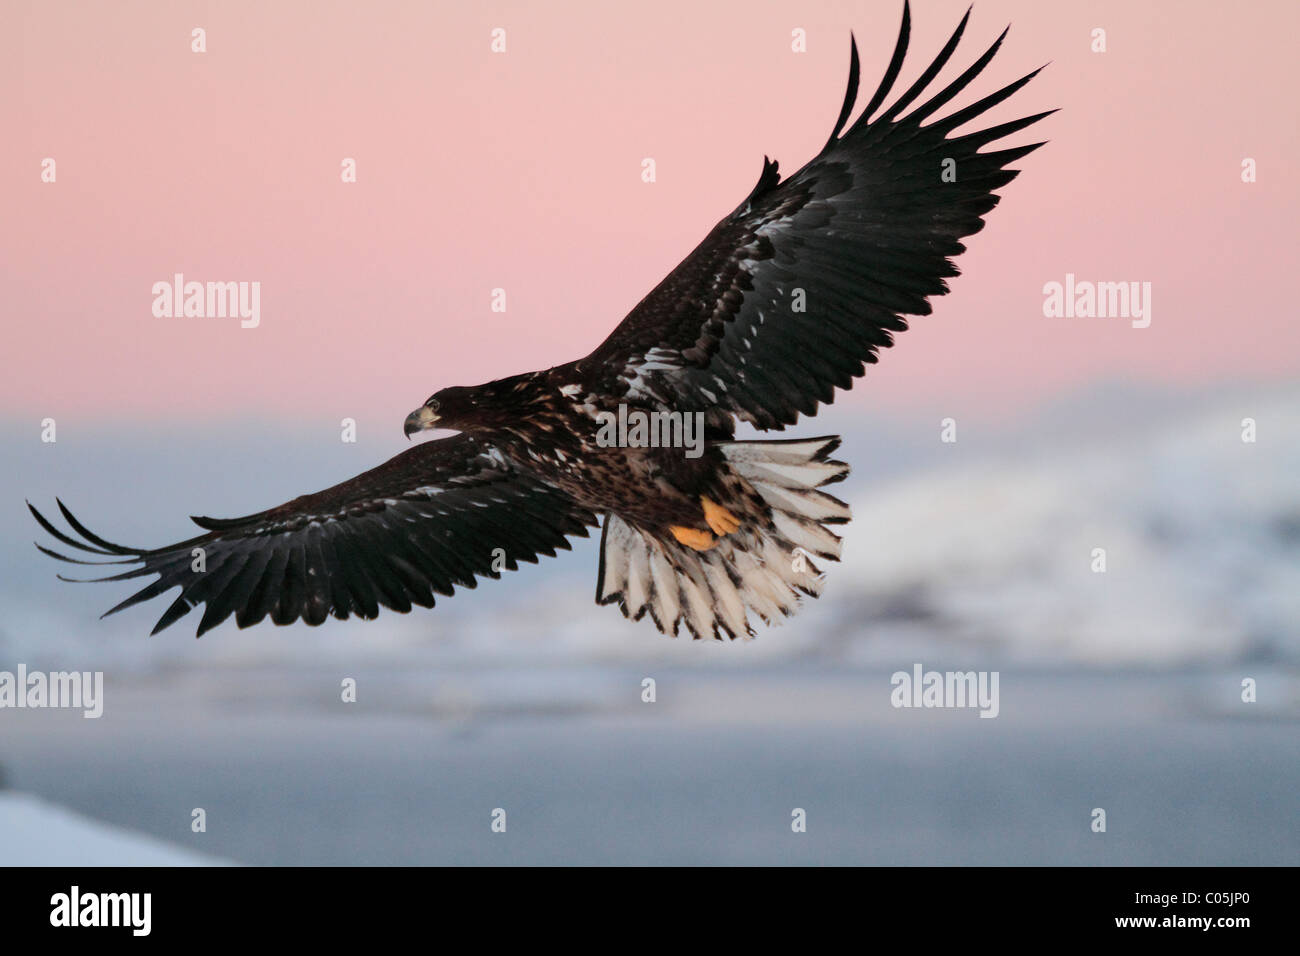 White-tailed eagle in winter coastal landscape in January, Norway - Stock Image